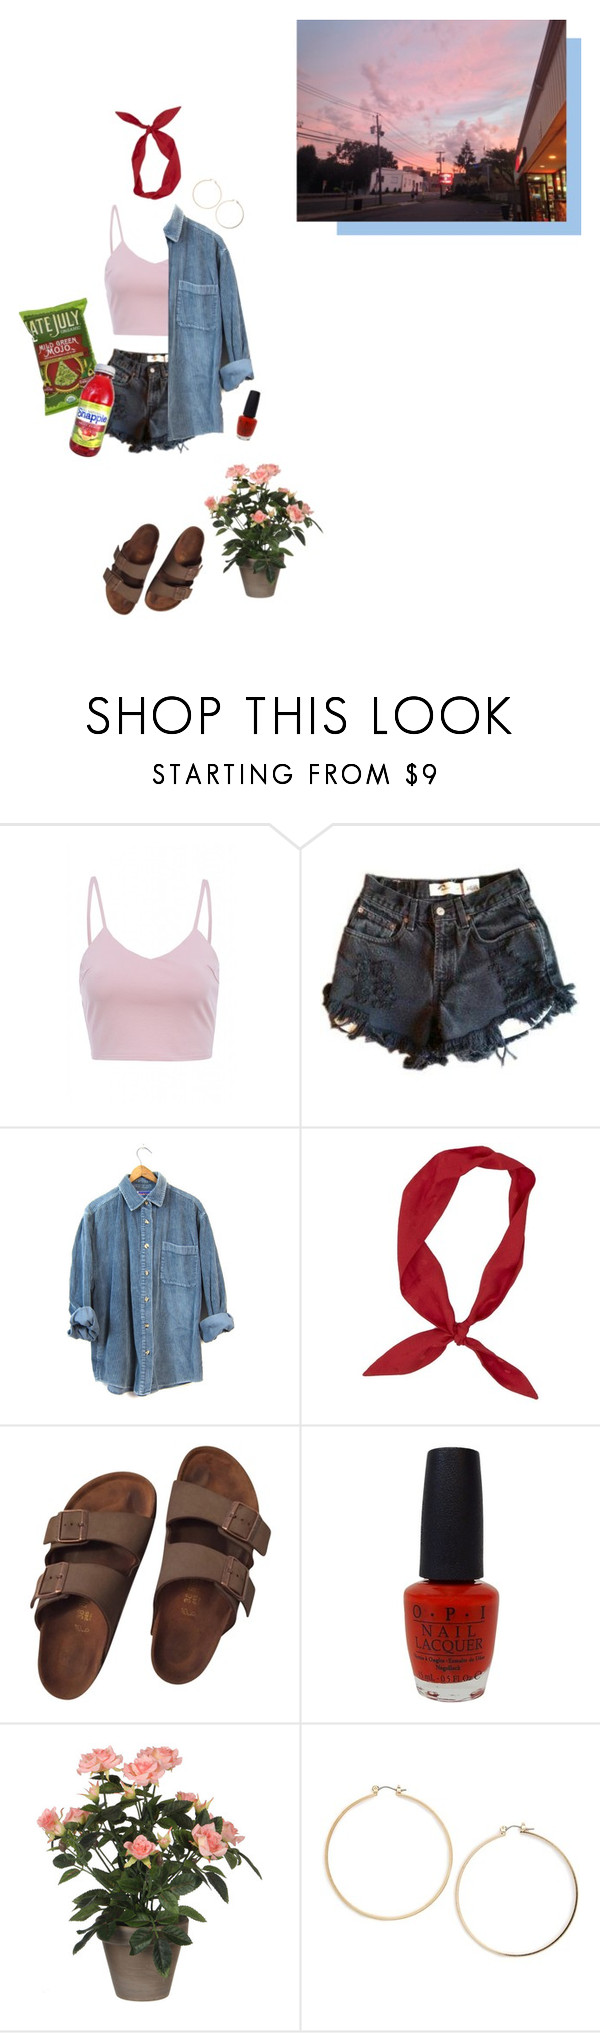 """""""snack run"""" by sensitive-pajaro ❤ liked on Polyvore featuring AX Paris, Levi's, Birkenstock, OPI, FRUIT and Topshop"""